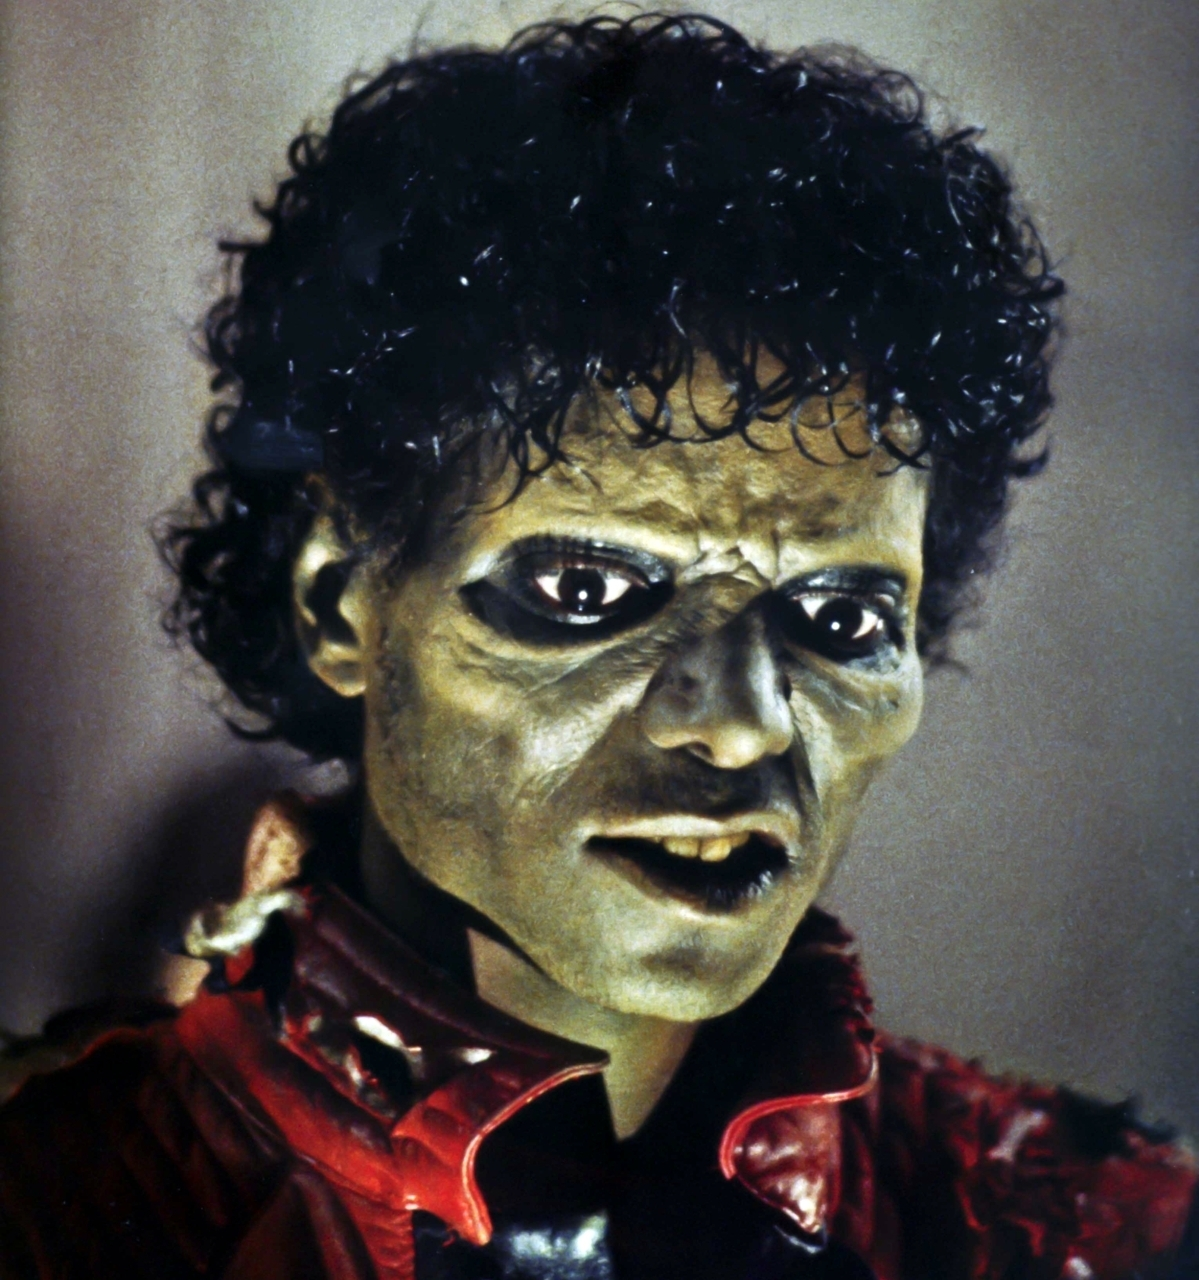 Michael Jackson - Thriller (Song Lyrics and Music Video